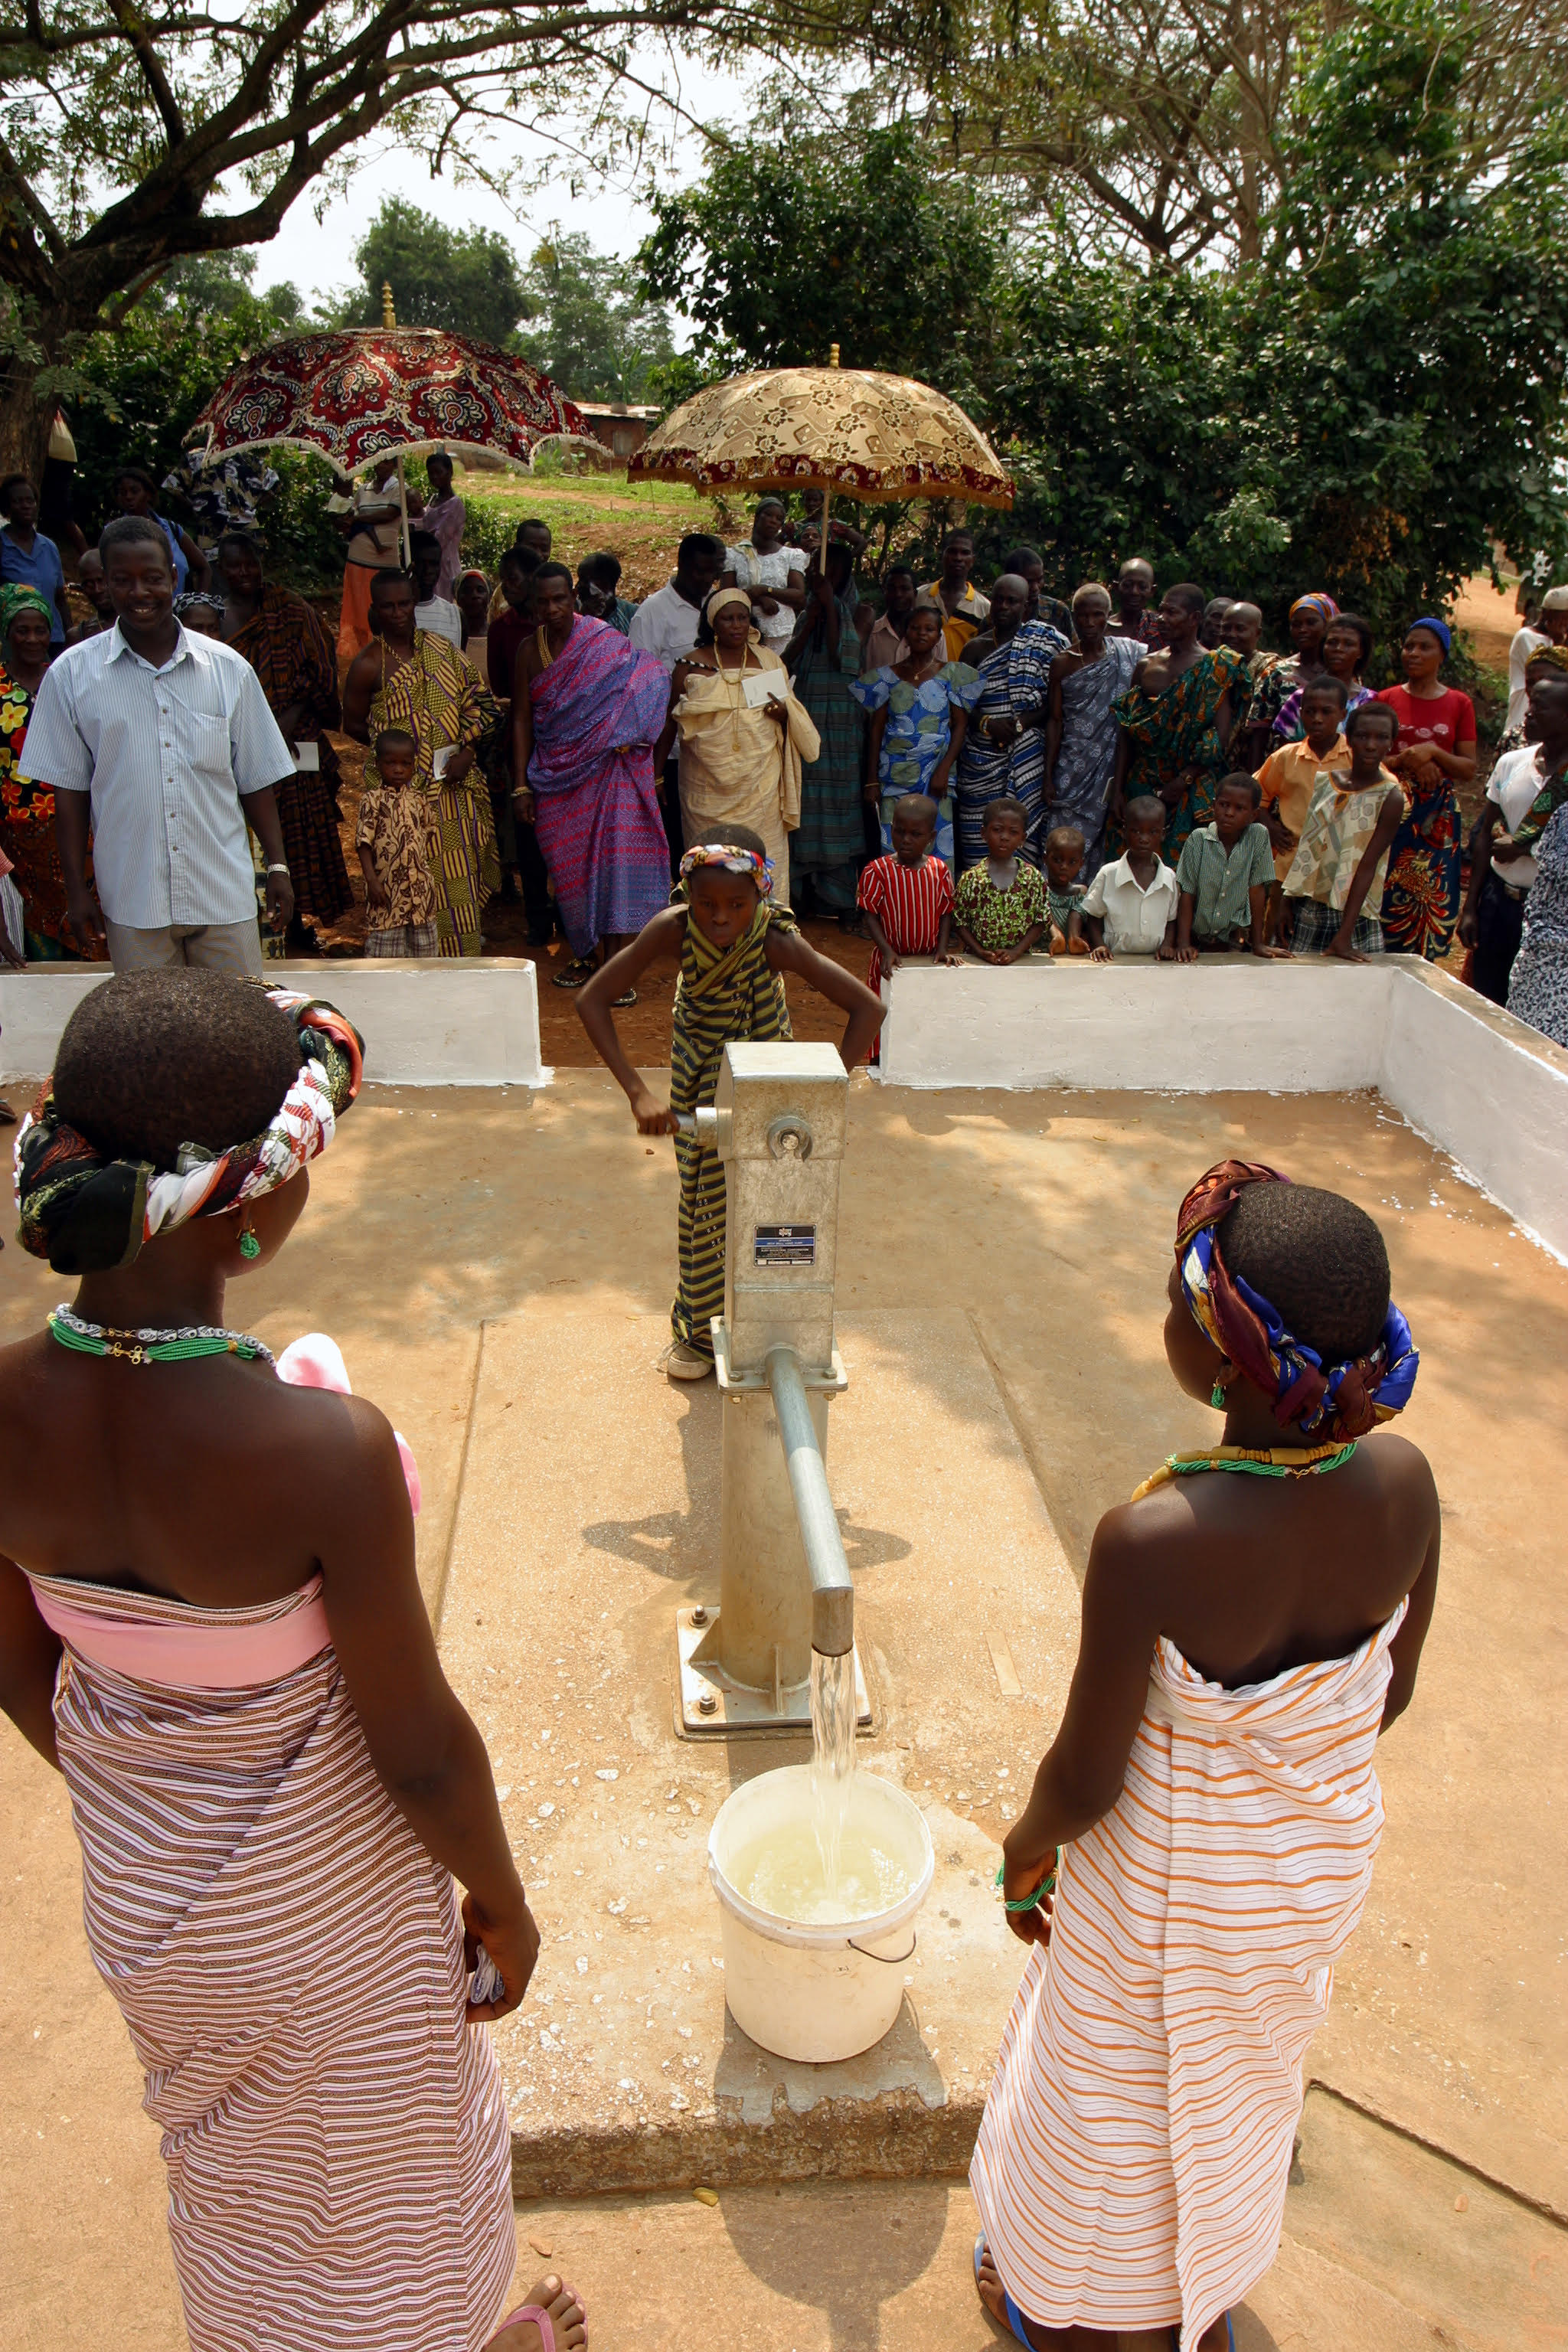 At a ceremony on Jan. 8, 2004, in which Latter-day Saint Charities handed two boreholes (fresh water wells) over to Ghana's village of Katapor, a young girl works the hand pump to start the flow of water into a bucket. Two other girls wait to present the water to village and district dignitaries.